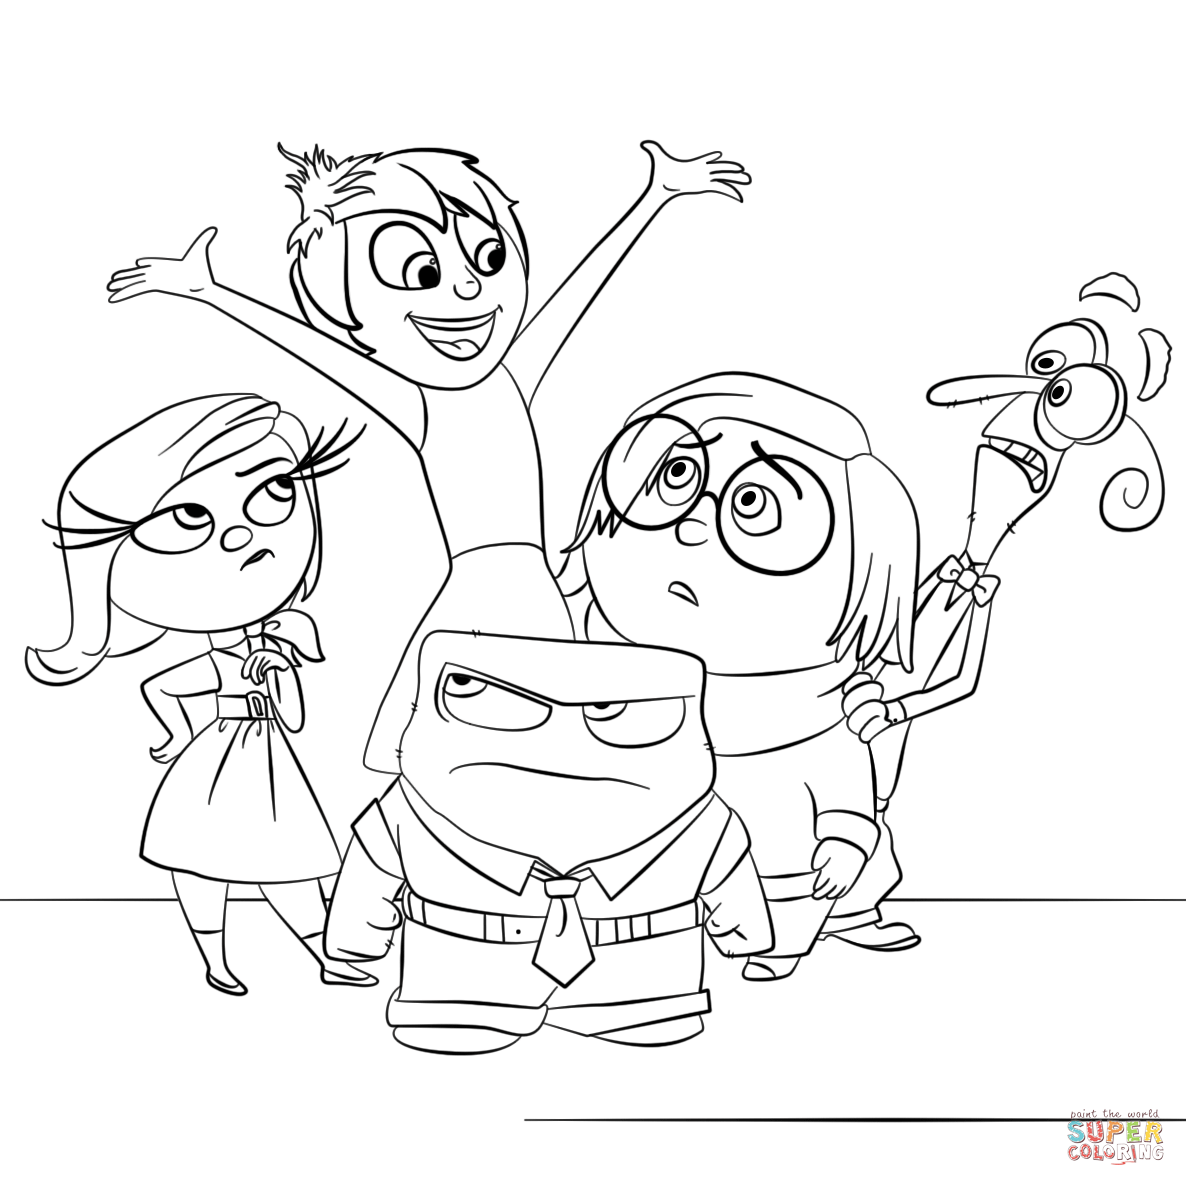 1186x1186 Just Arrived Cartoon Characters To Colour In I